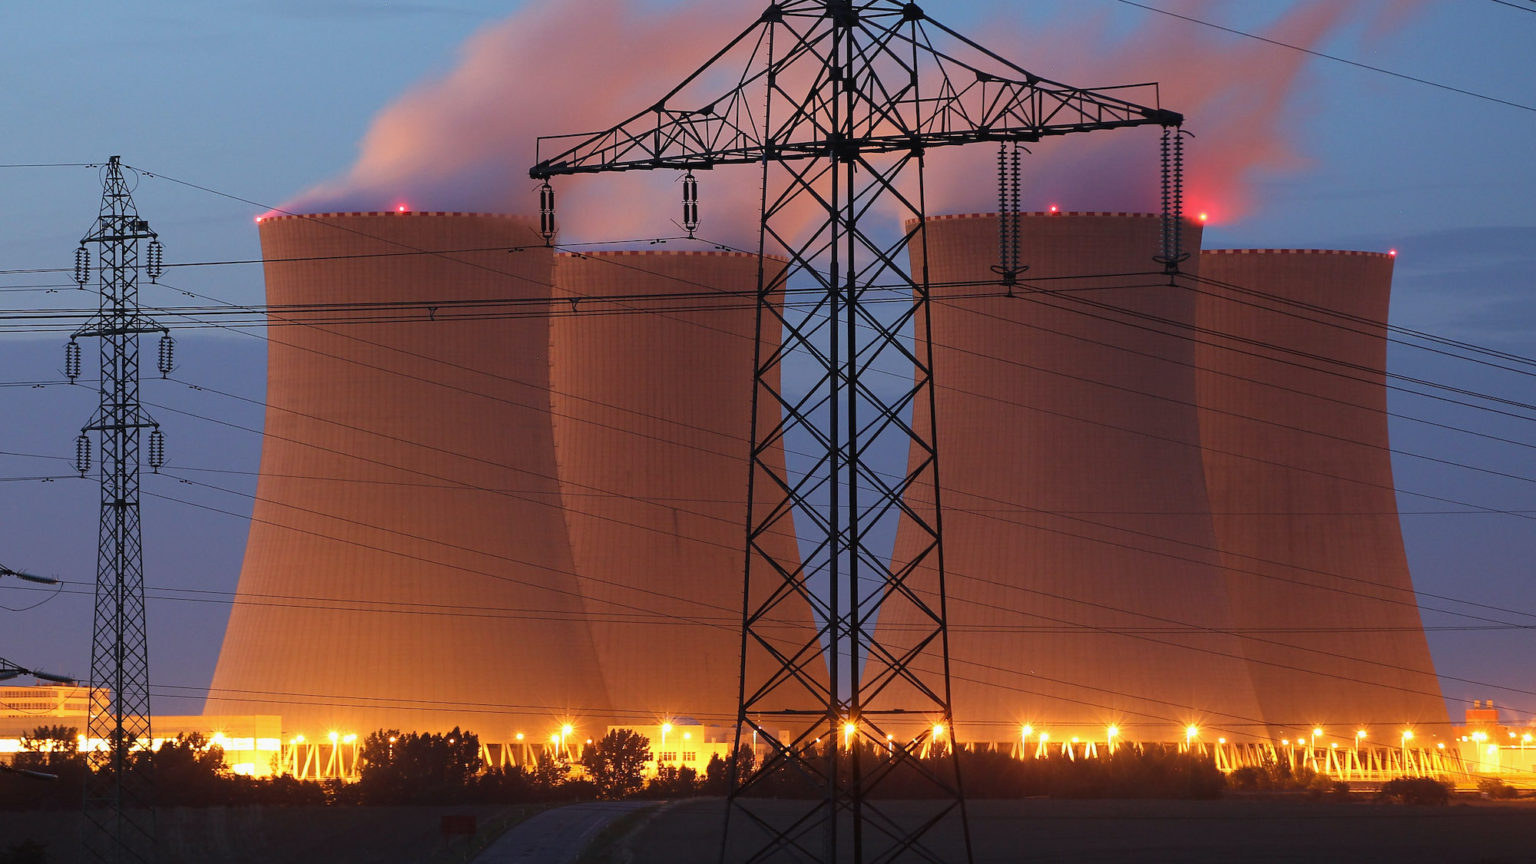 Re-making the case for nuclear energy